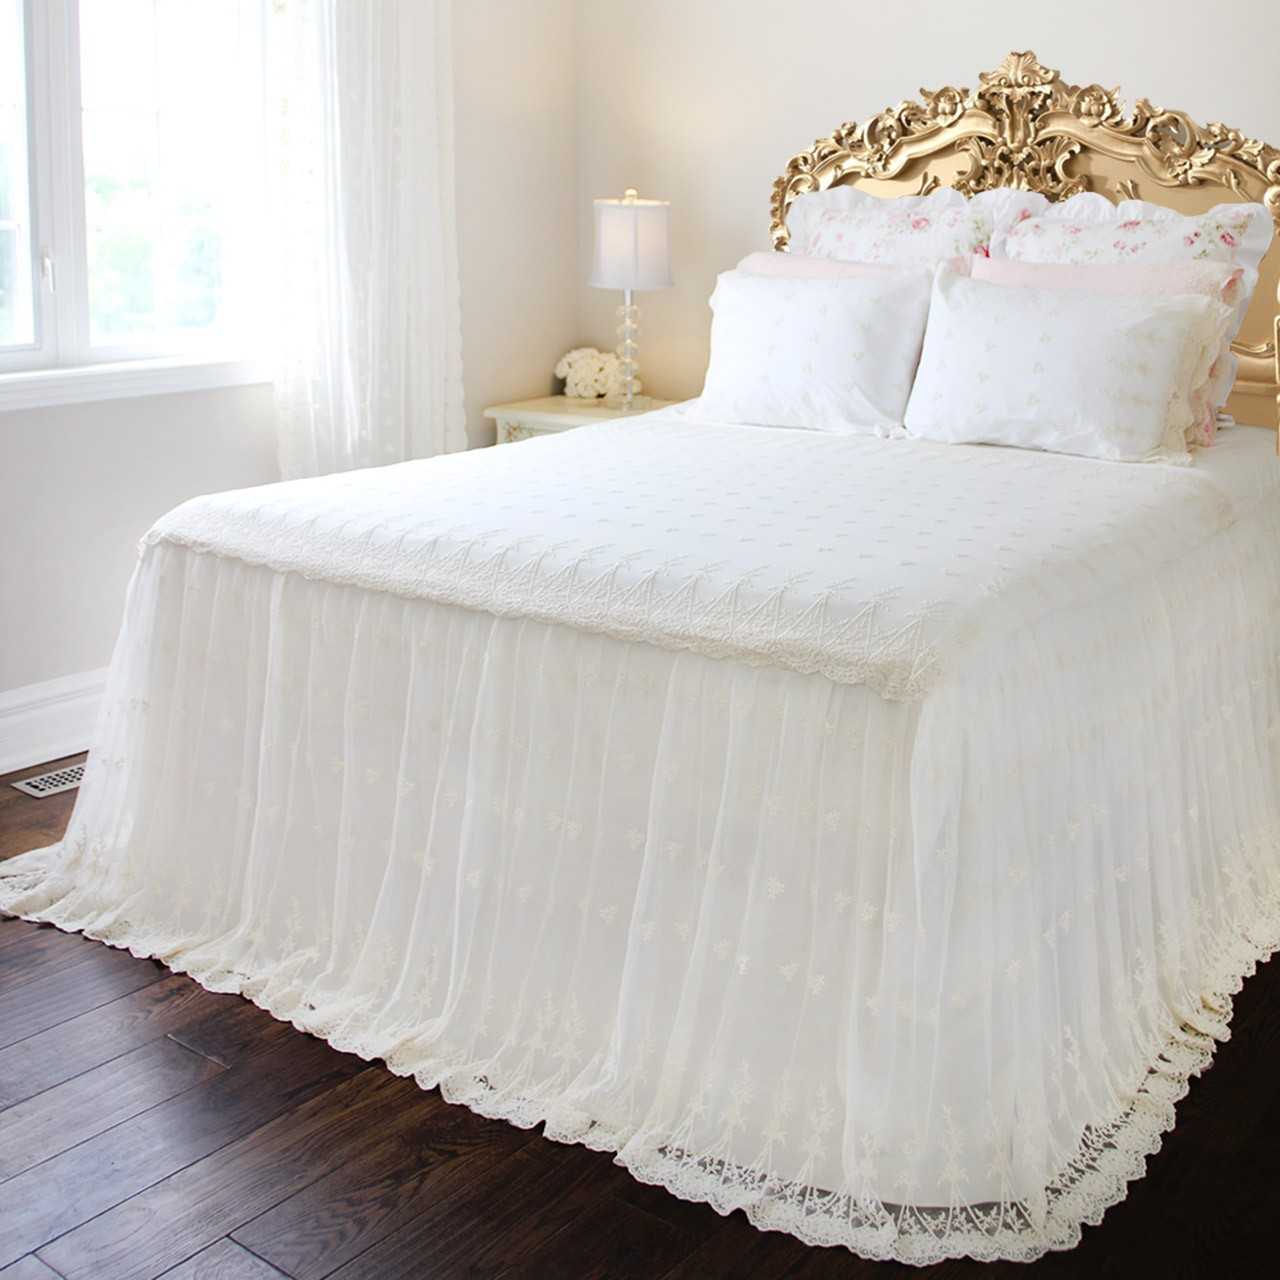 Bed Coverlet Lace Love Bedspread Coverlet